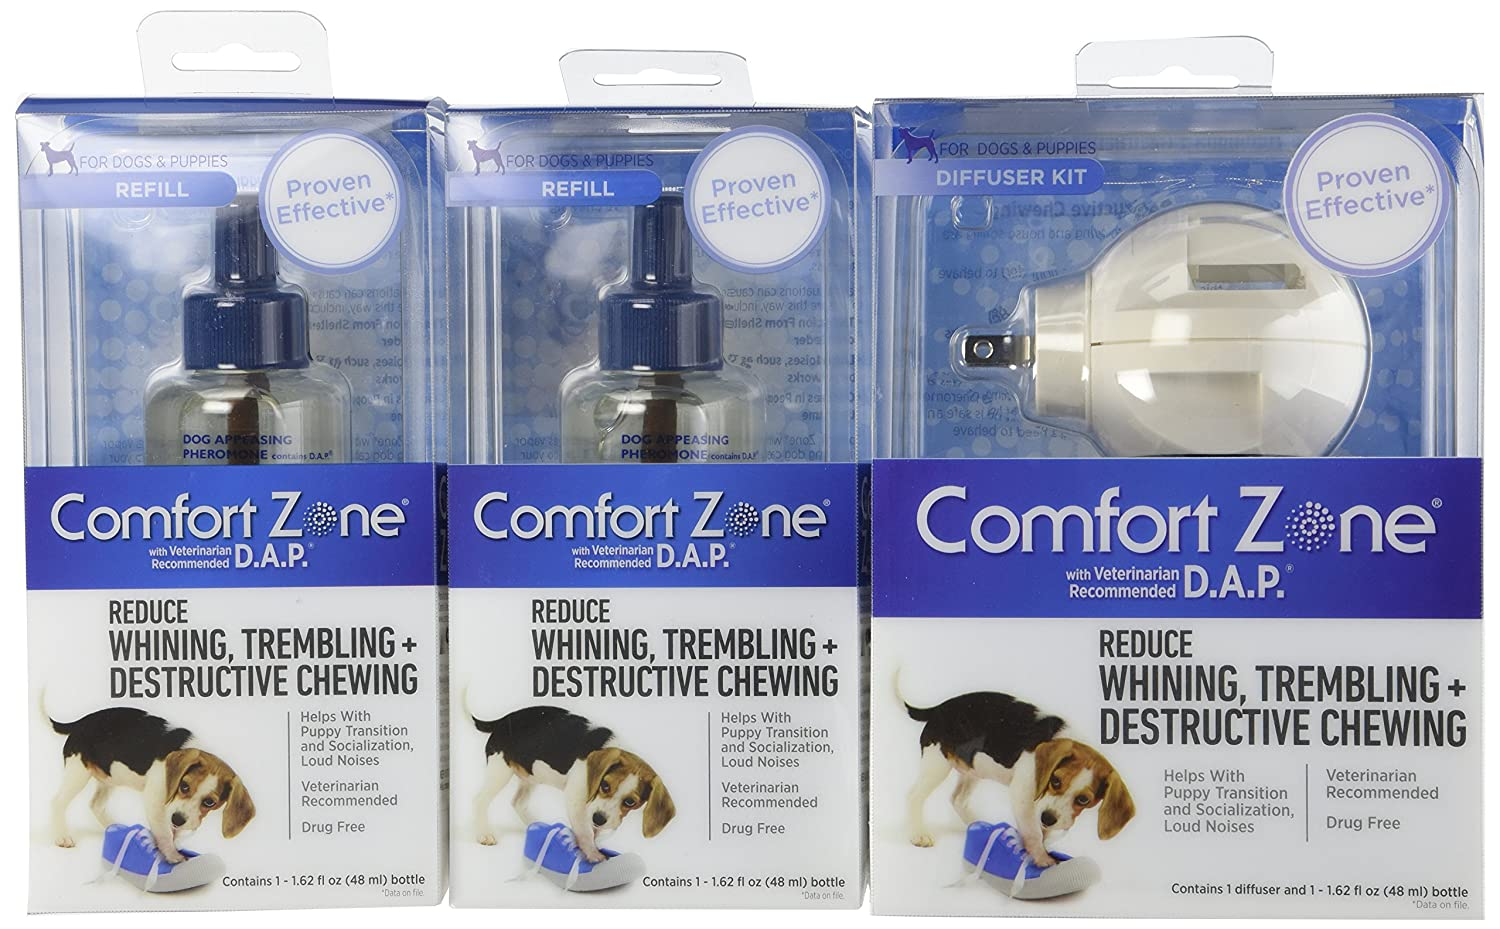 Comfort Zone Dog Appeasing Pheromone Diffuser with 2 Extra Refills for Behavior Control, 1-Pack